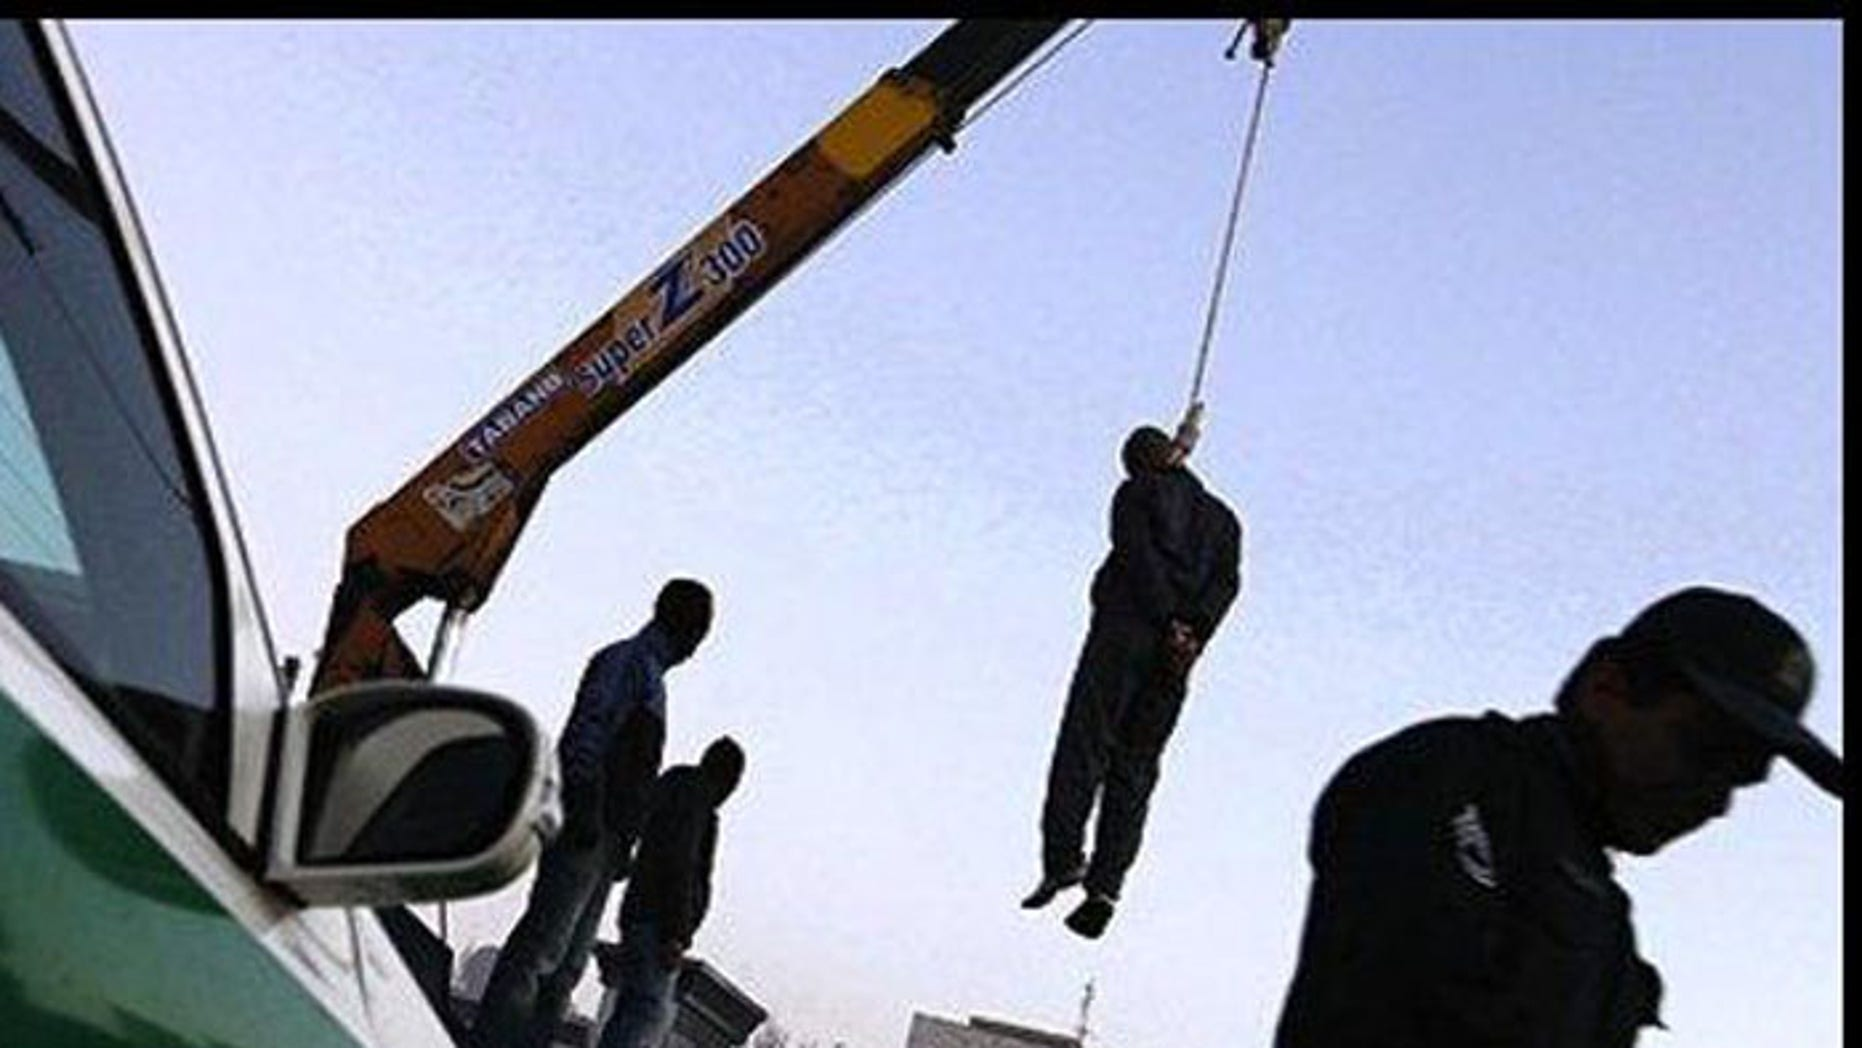 Iran is infamous for using cranes for public executions. (Reuters)